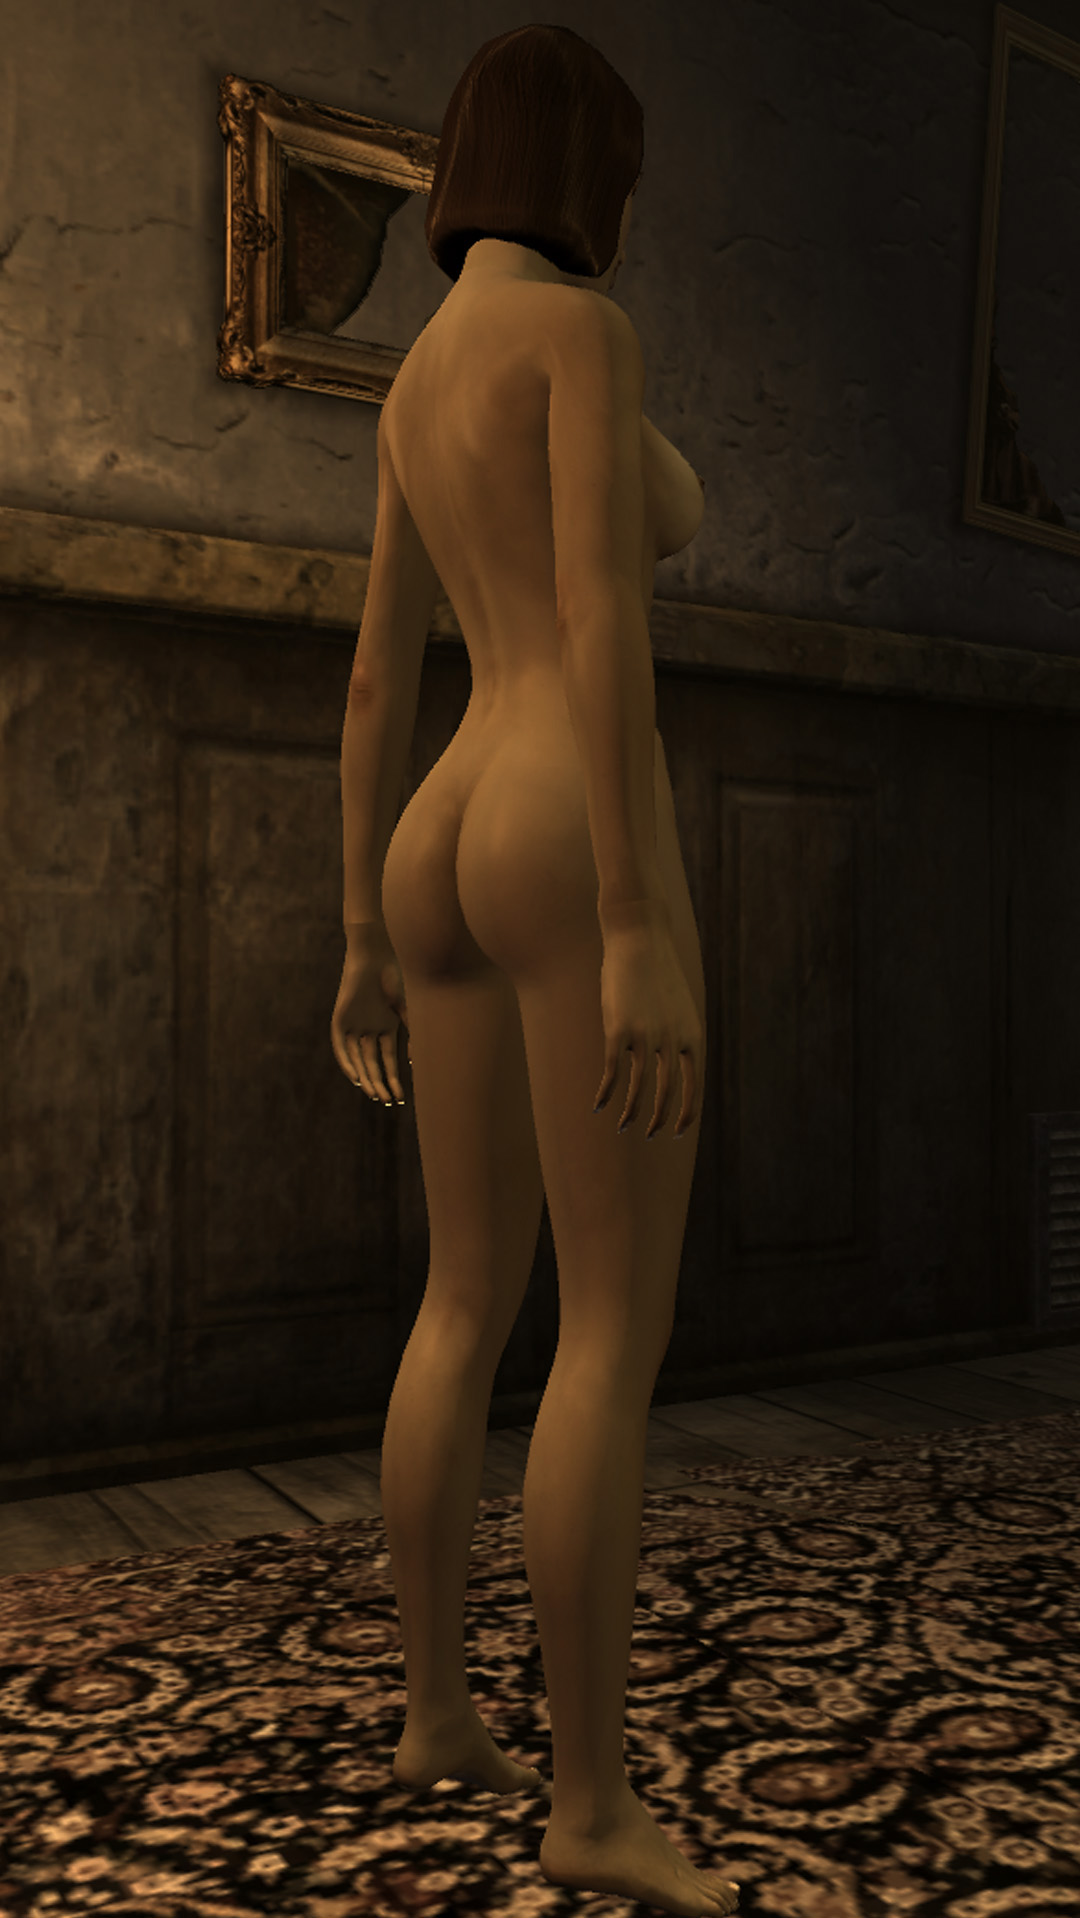 Fallout new vegas nude patch exposed photo